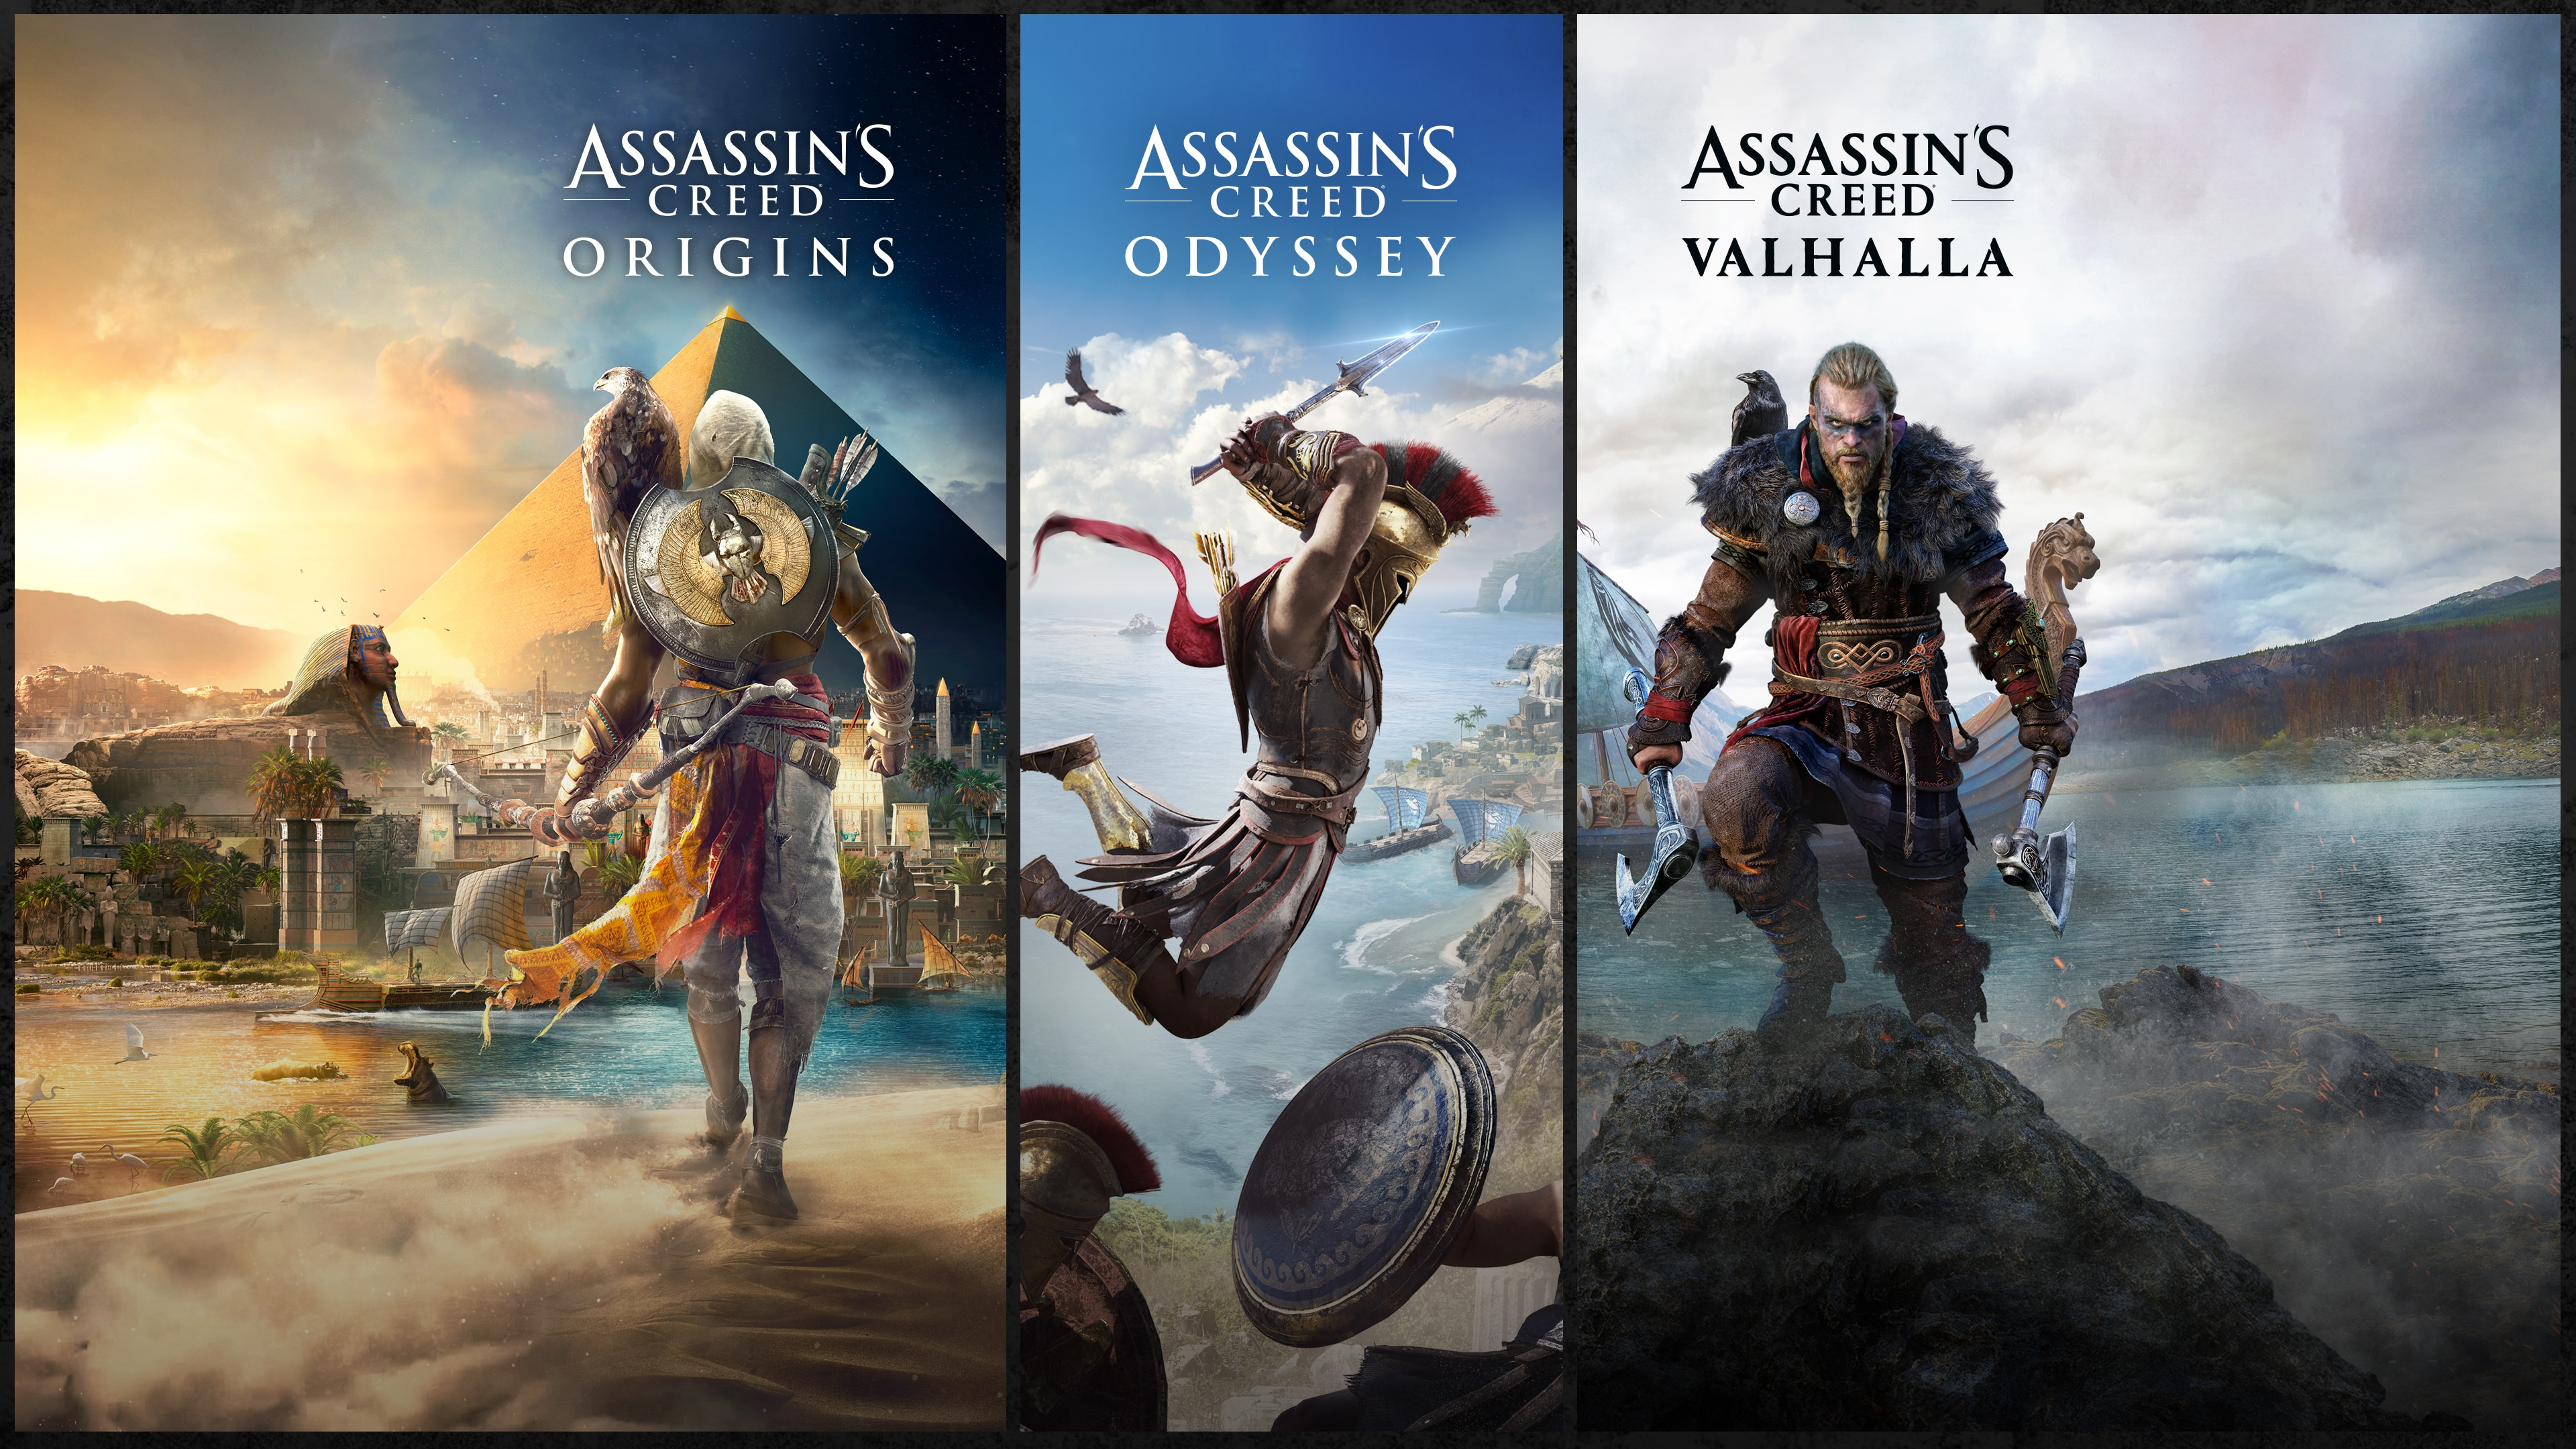 Assassin's Creed® Bundle: Assassin's Creed® Valhalla, Assassin's Creed® Odyssey, and Assassin's Creed® Origins